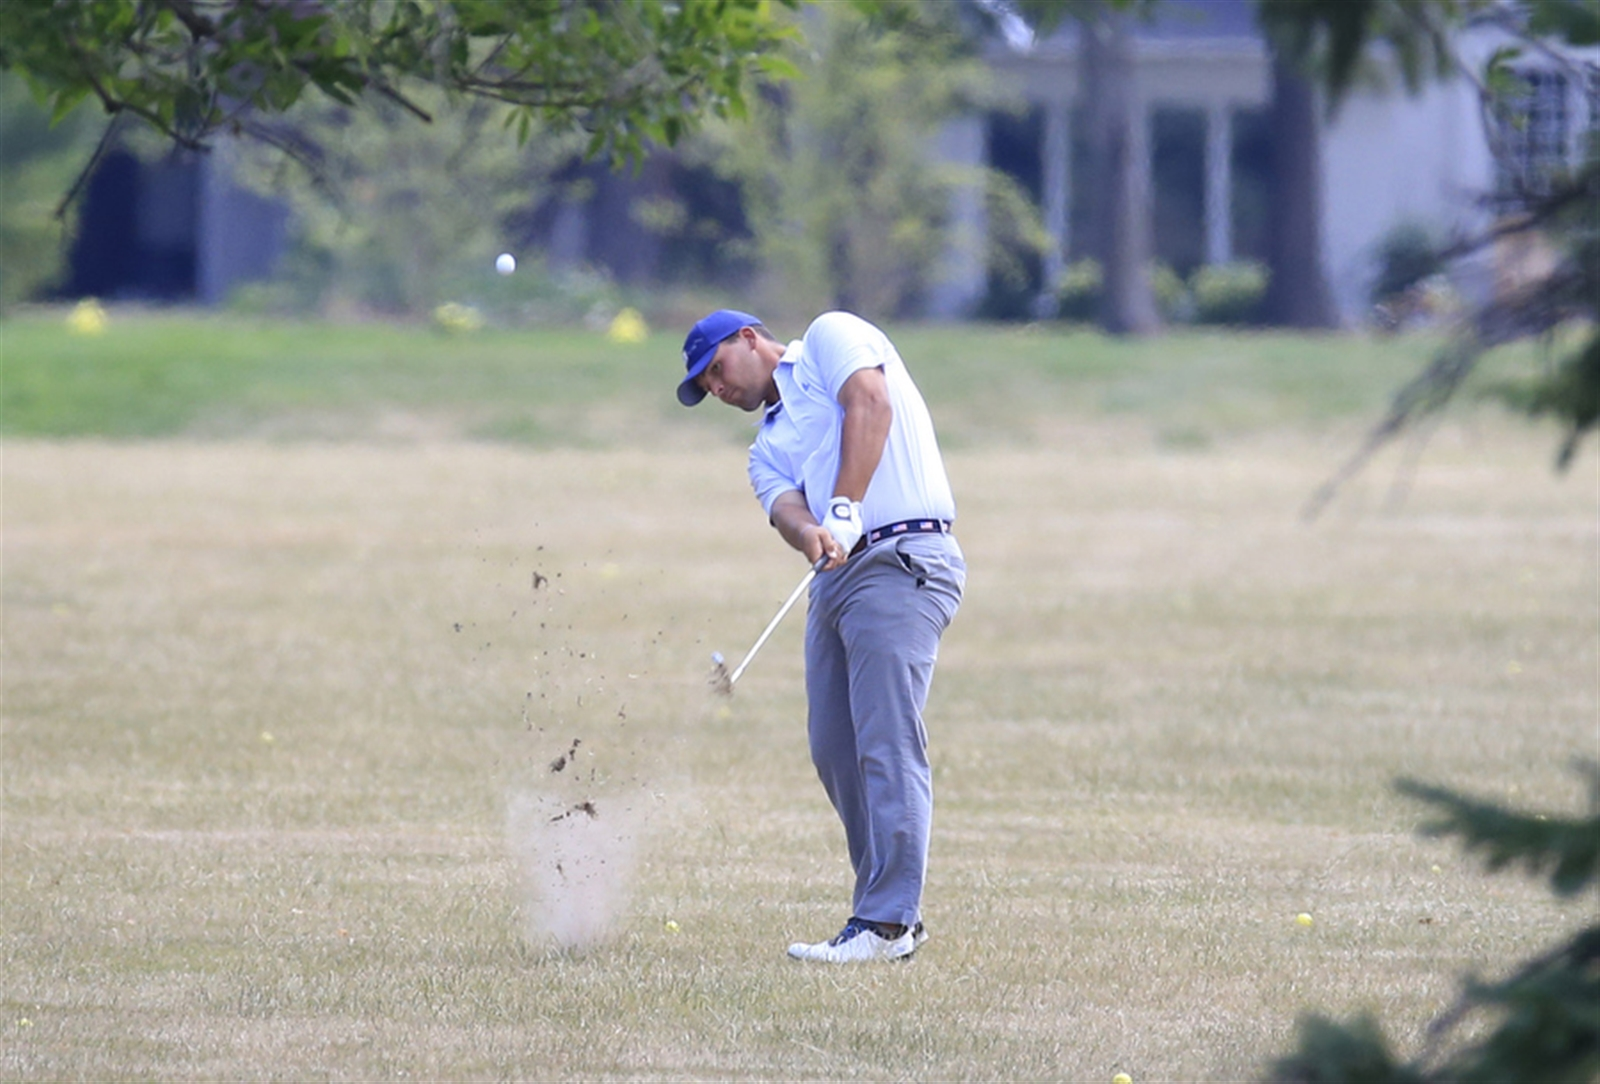 Billy Gaffney from East Amherst hits from the ninth fairway during round three of the Porter Cup. The competition was held at the Niagara Falls Country Club on July 29.